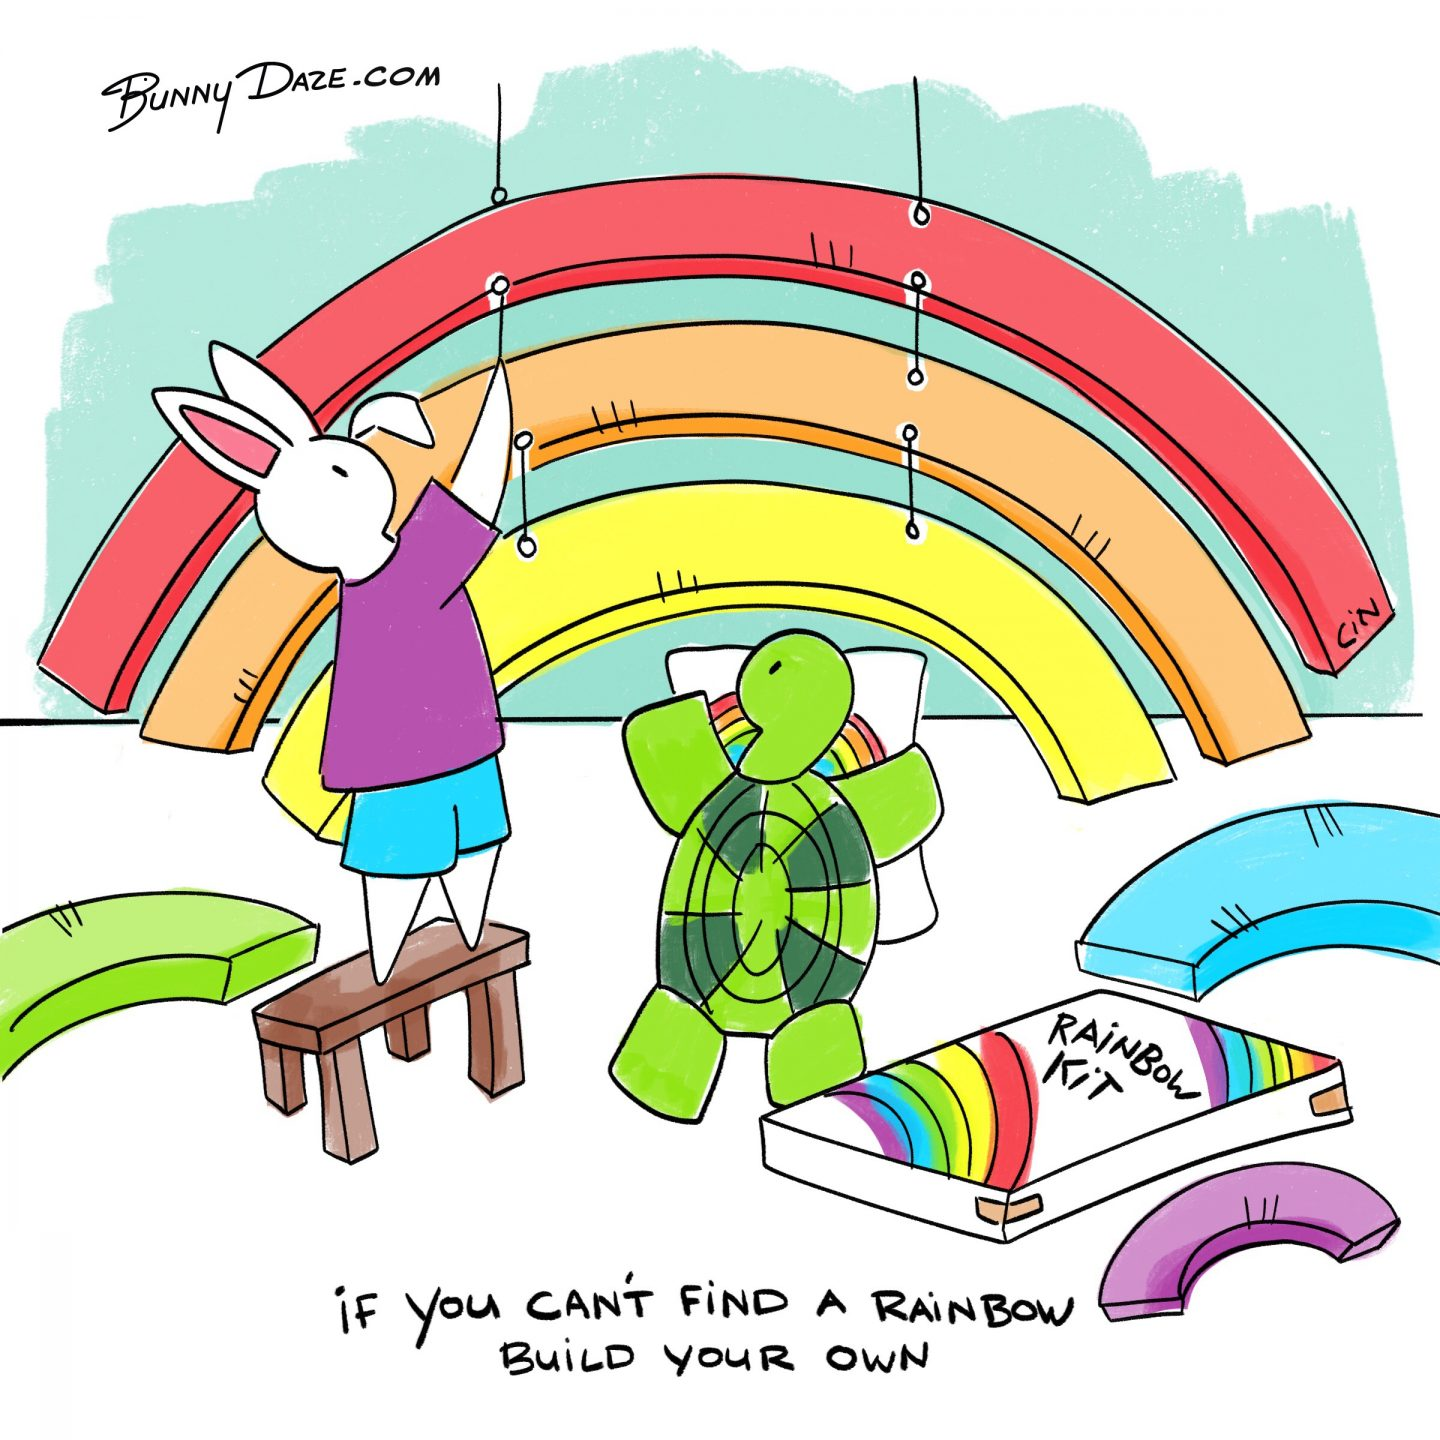 If you can t find a rainbow build your own bunnydaze for Find a builder